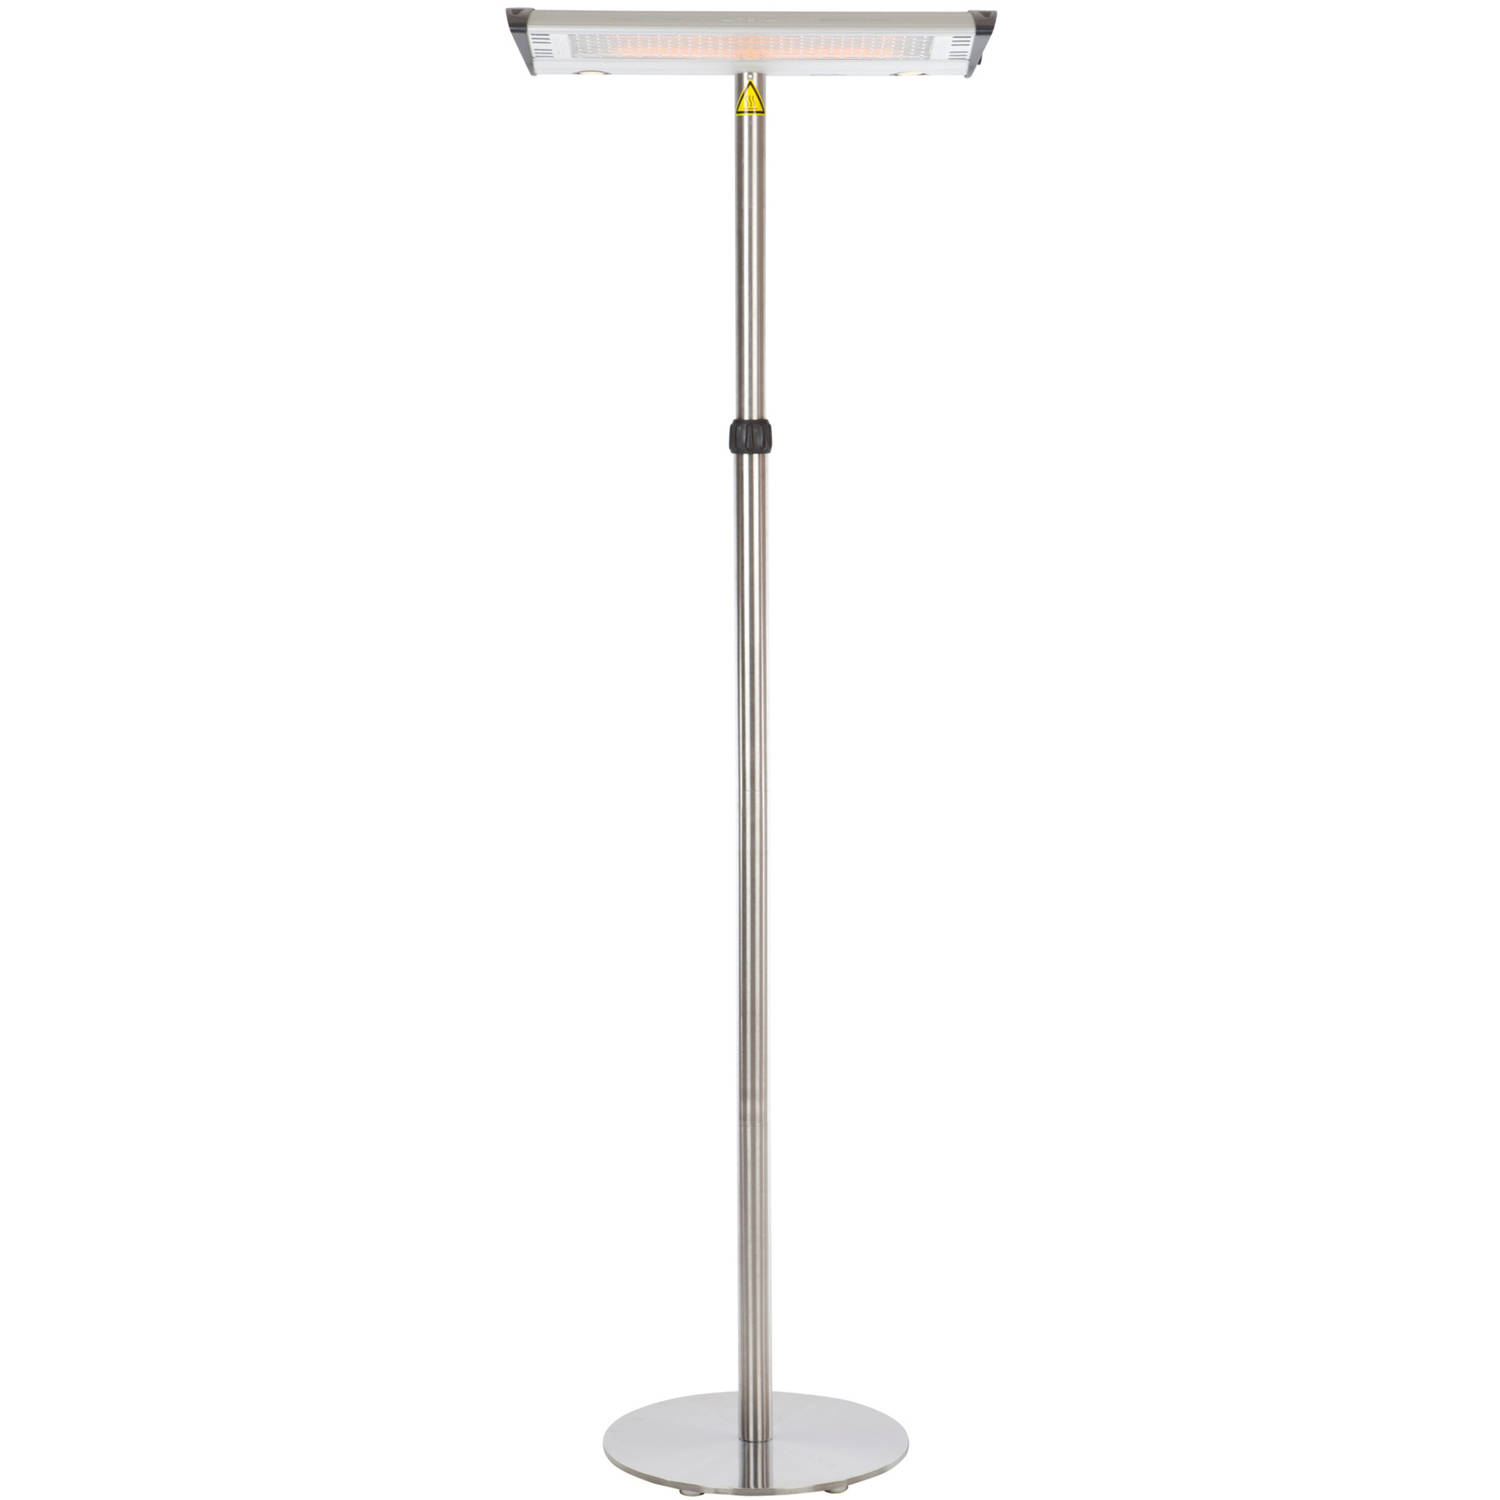 Morrison Dual Head Floor Standing Halogen Patio Heater by Well Traveled Living